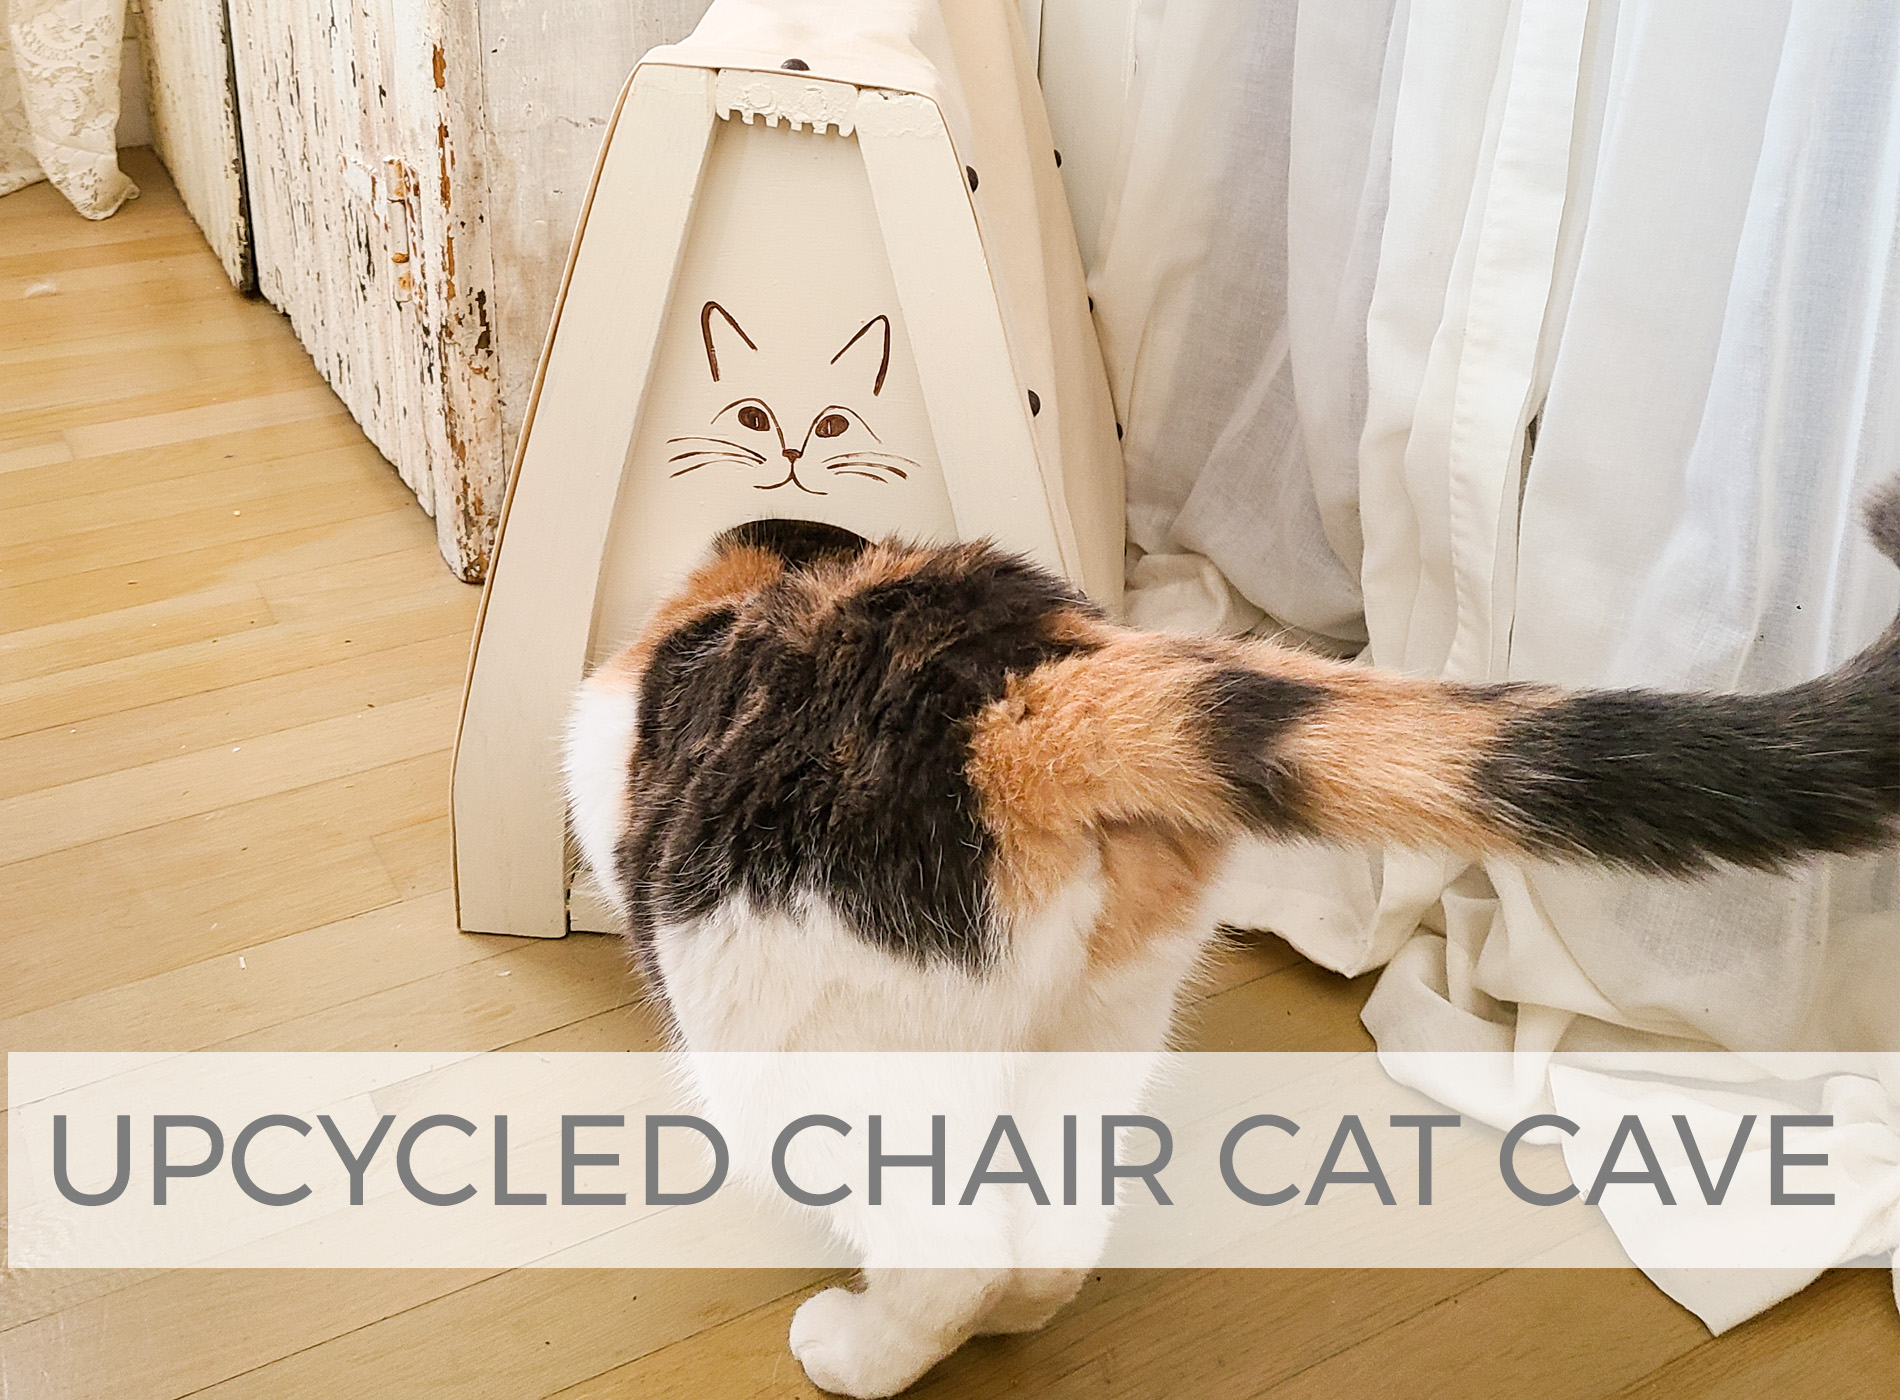 Upcycled Chair Cat Cave by Larissa of Prodigal Pieces | prodigalpieces.com #prodigalpieces